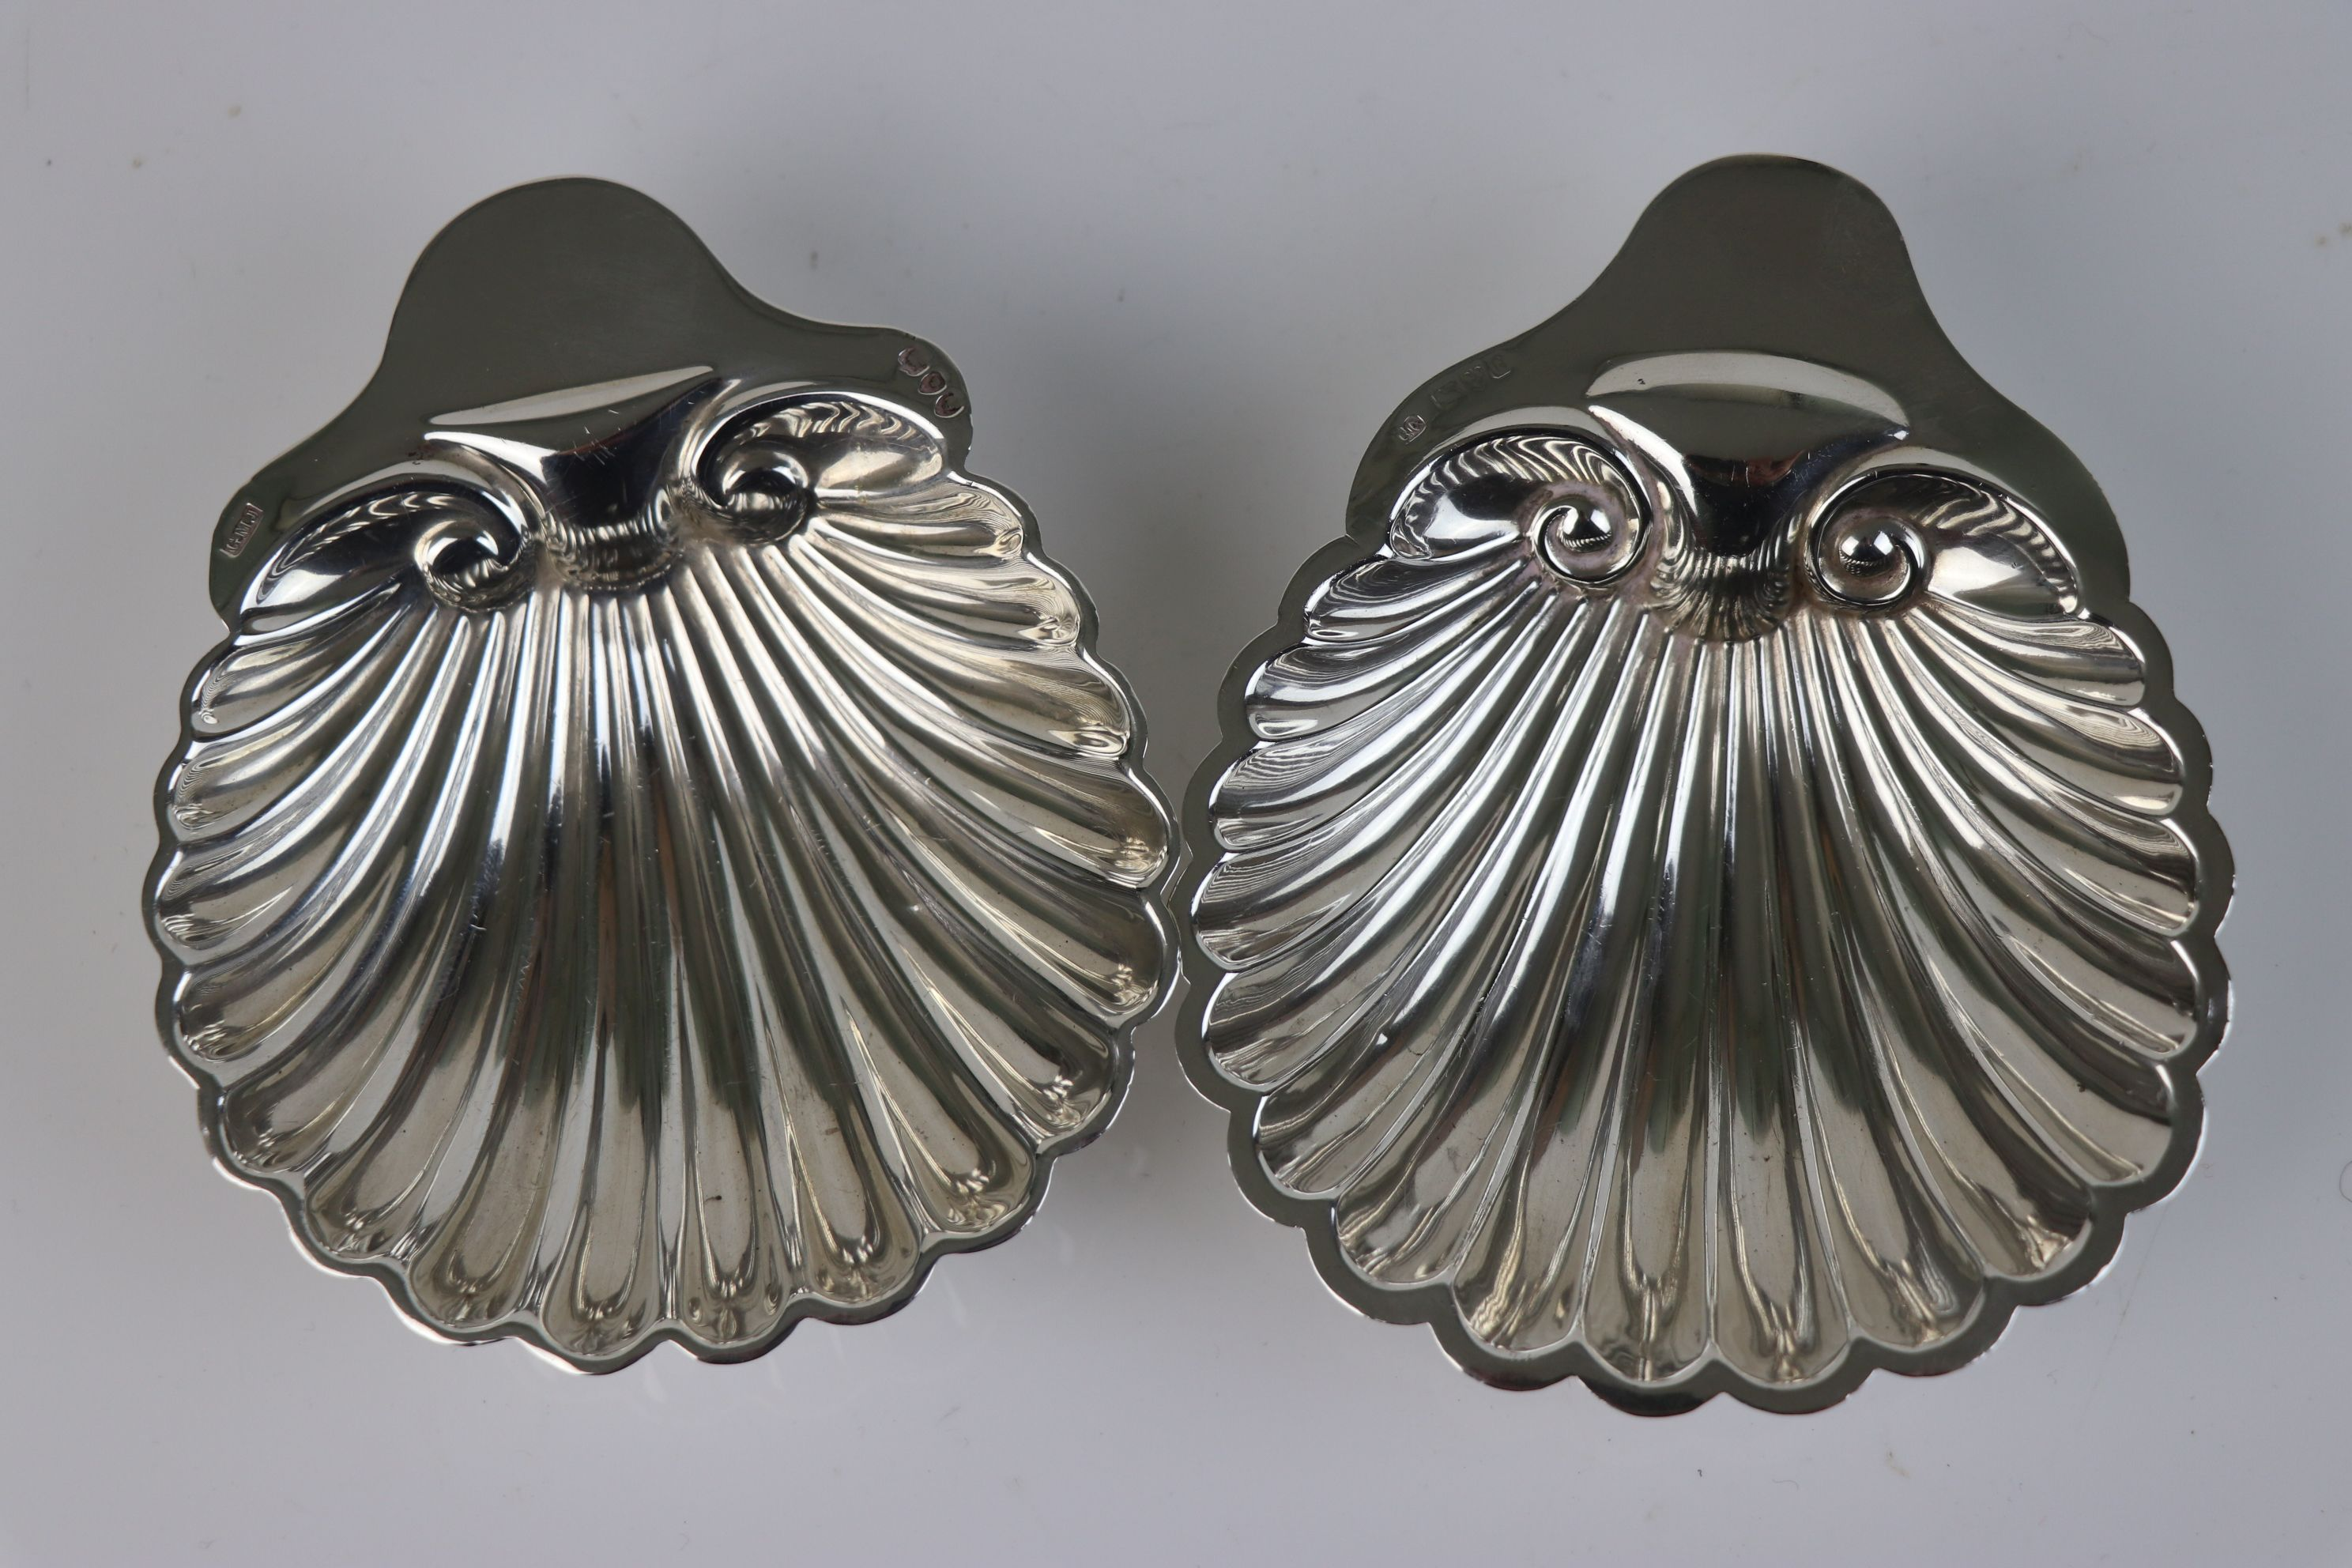 A pair of fully hallmarked sterling silver scalloped butter dishes, maker marked for Josiah Williams